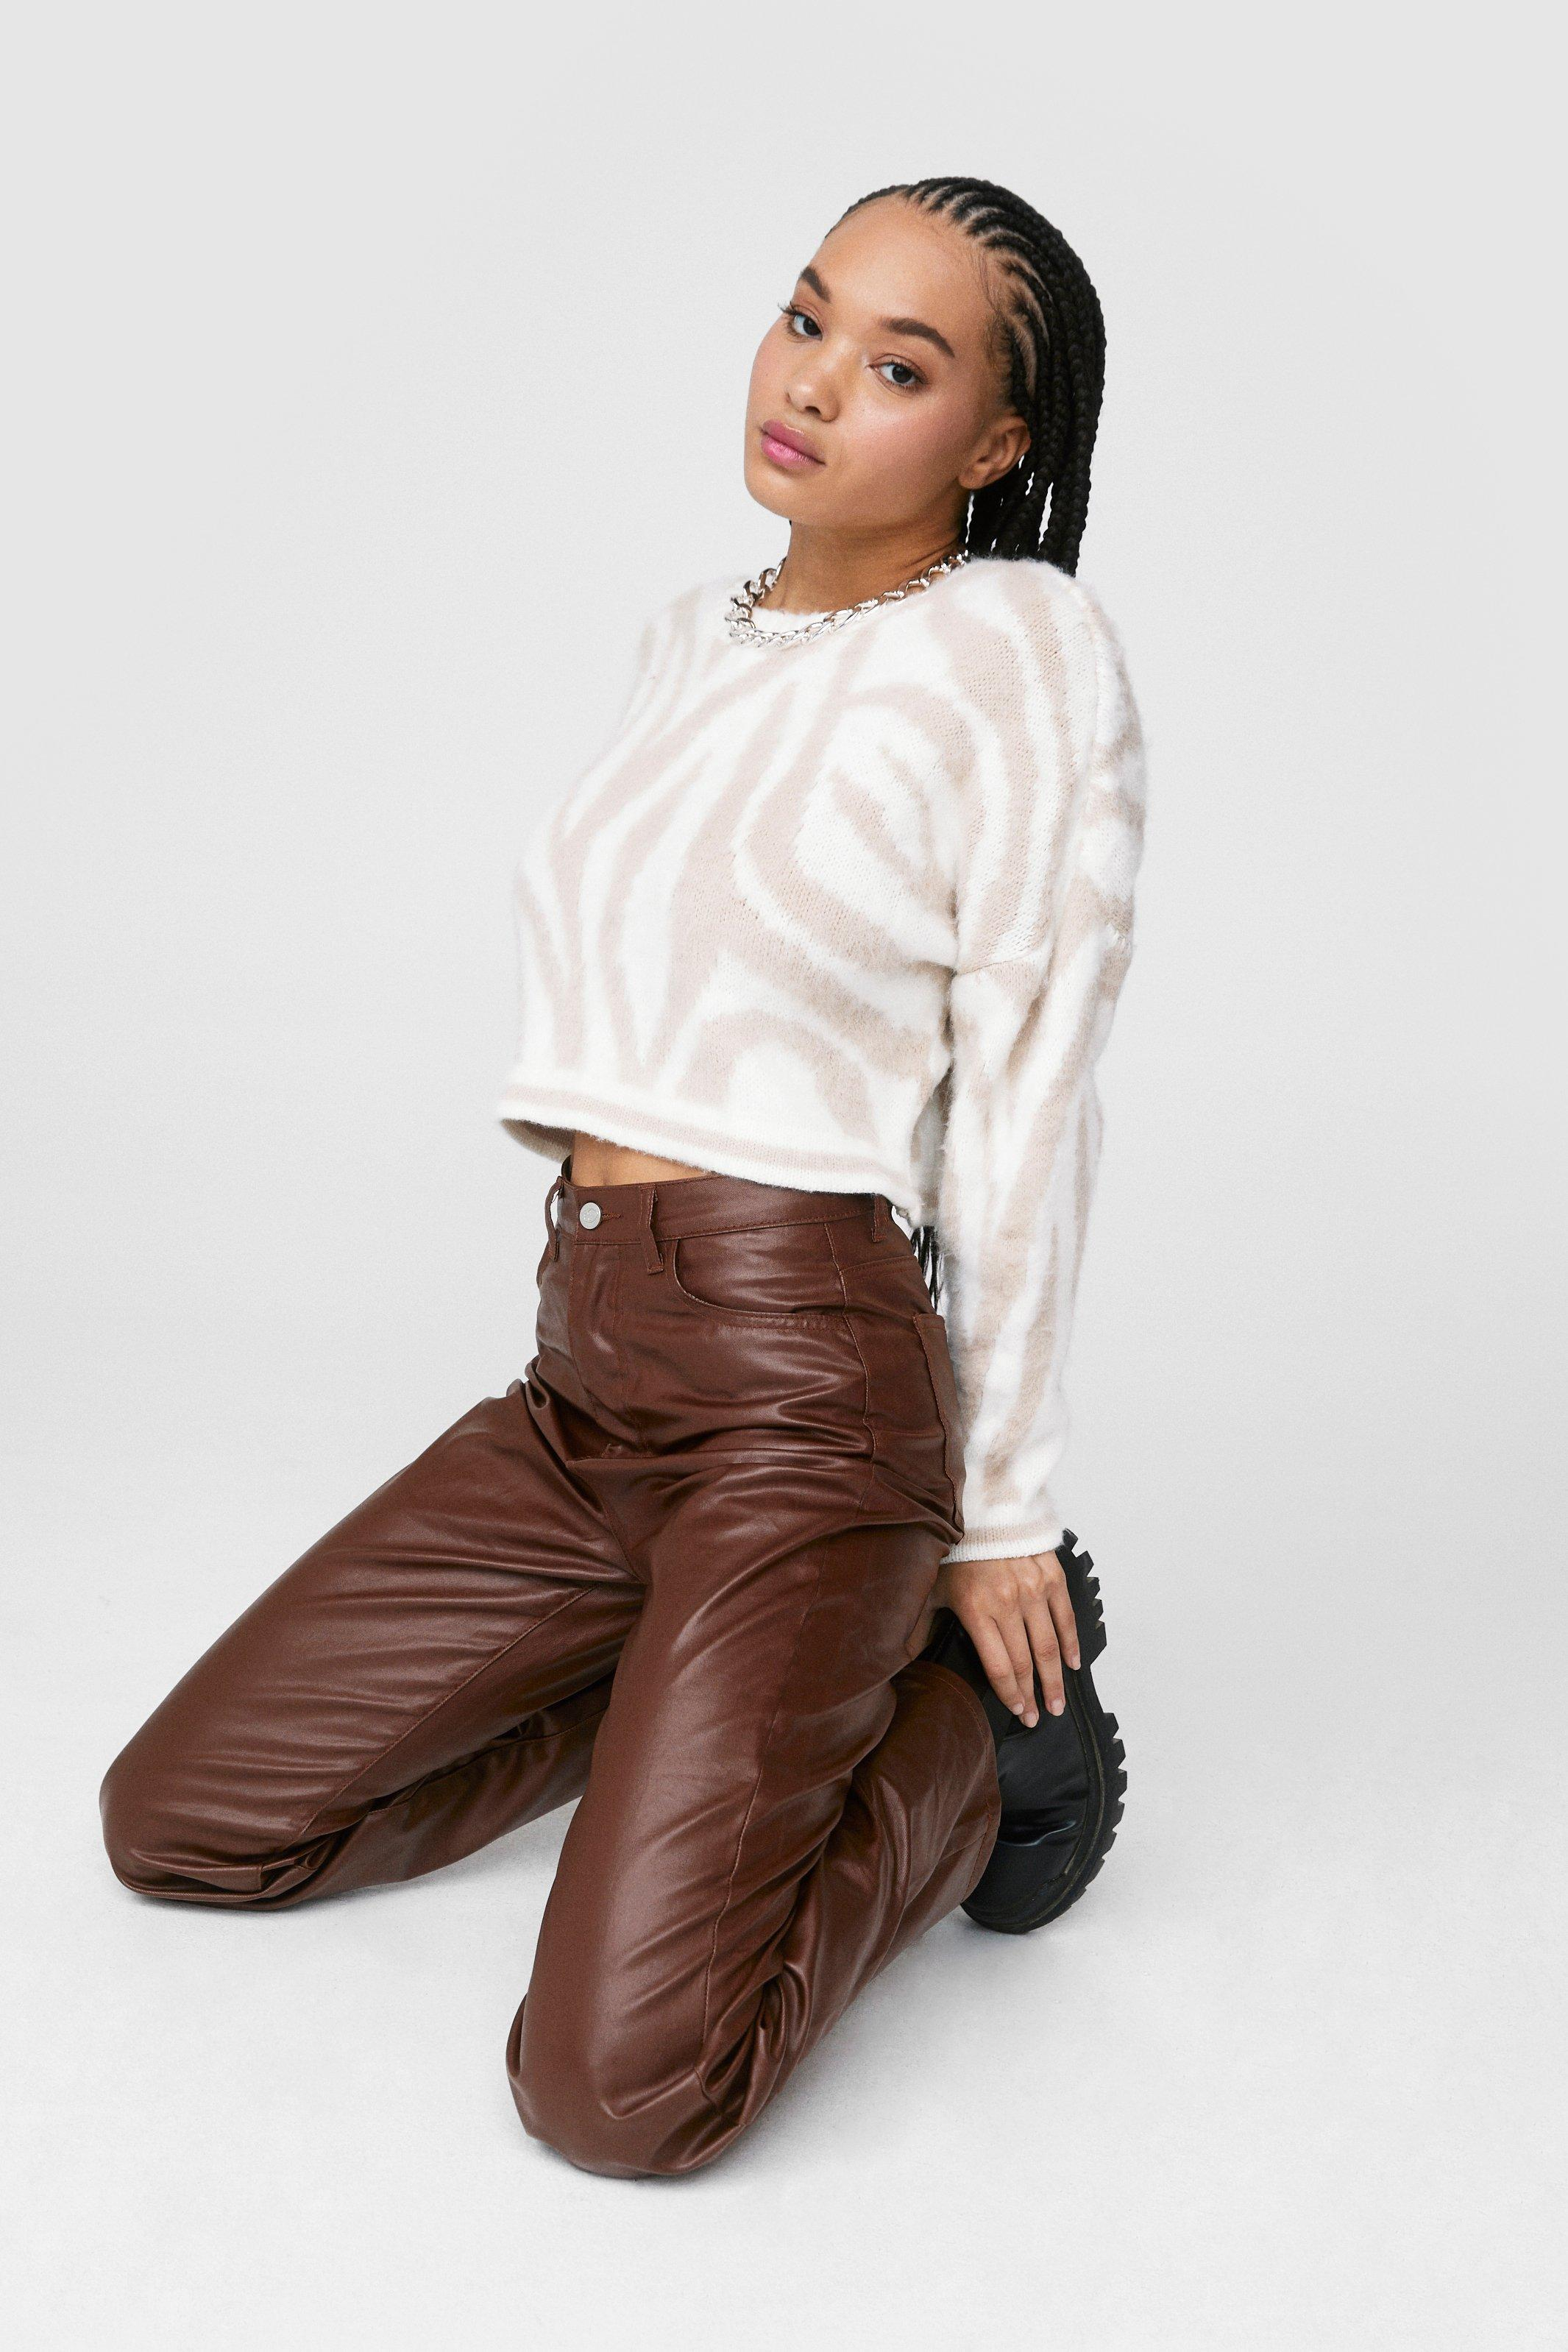 90s Clothing Outfits You Can Buy Now Womens Dru Coated Wide Leg Jeans - Chocolate - 10 $26.00 AT vintagedancer.com